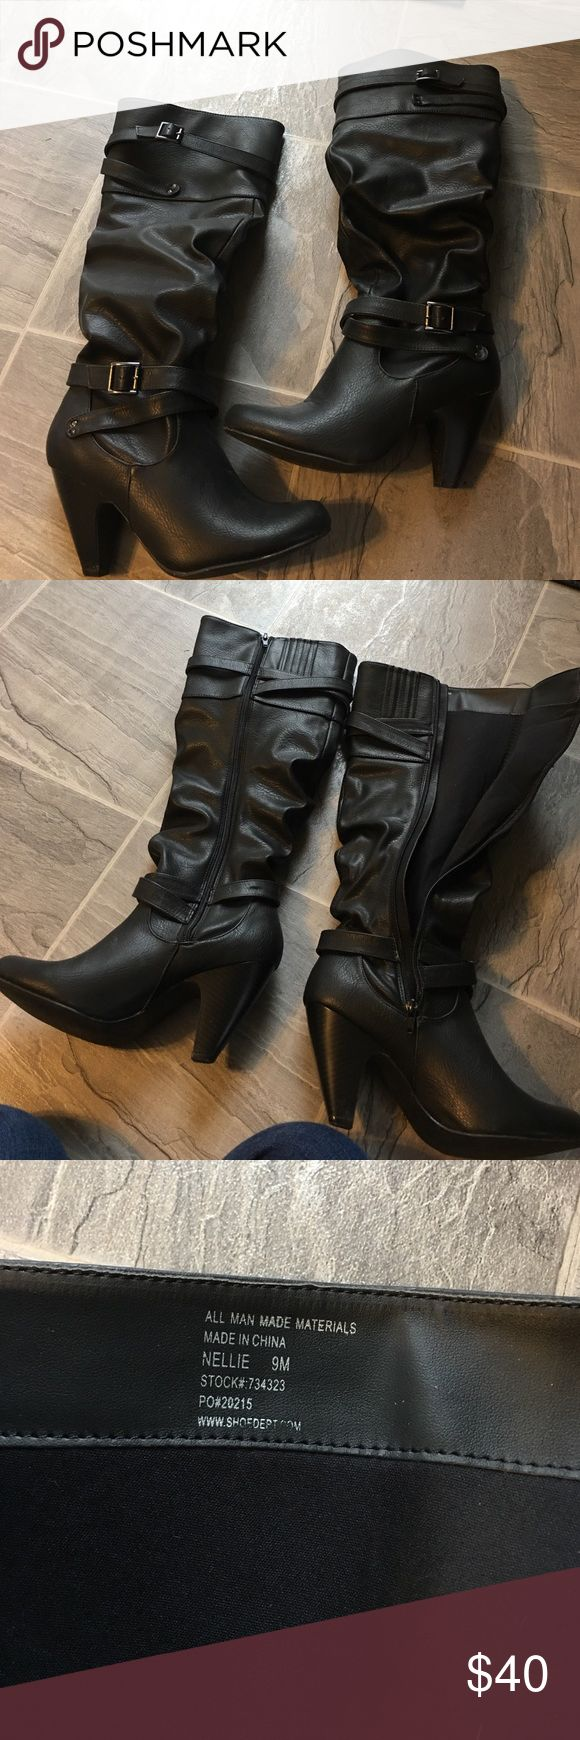 Women's black heeled boots Women's size 9 black zip up heeled boots. Perfect condition worn once. Cheaper on merc Shoes Heeled Boots